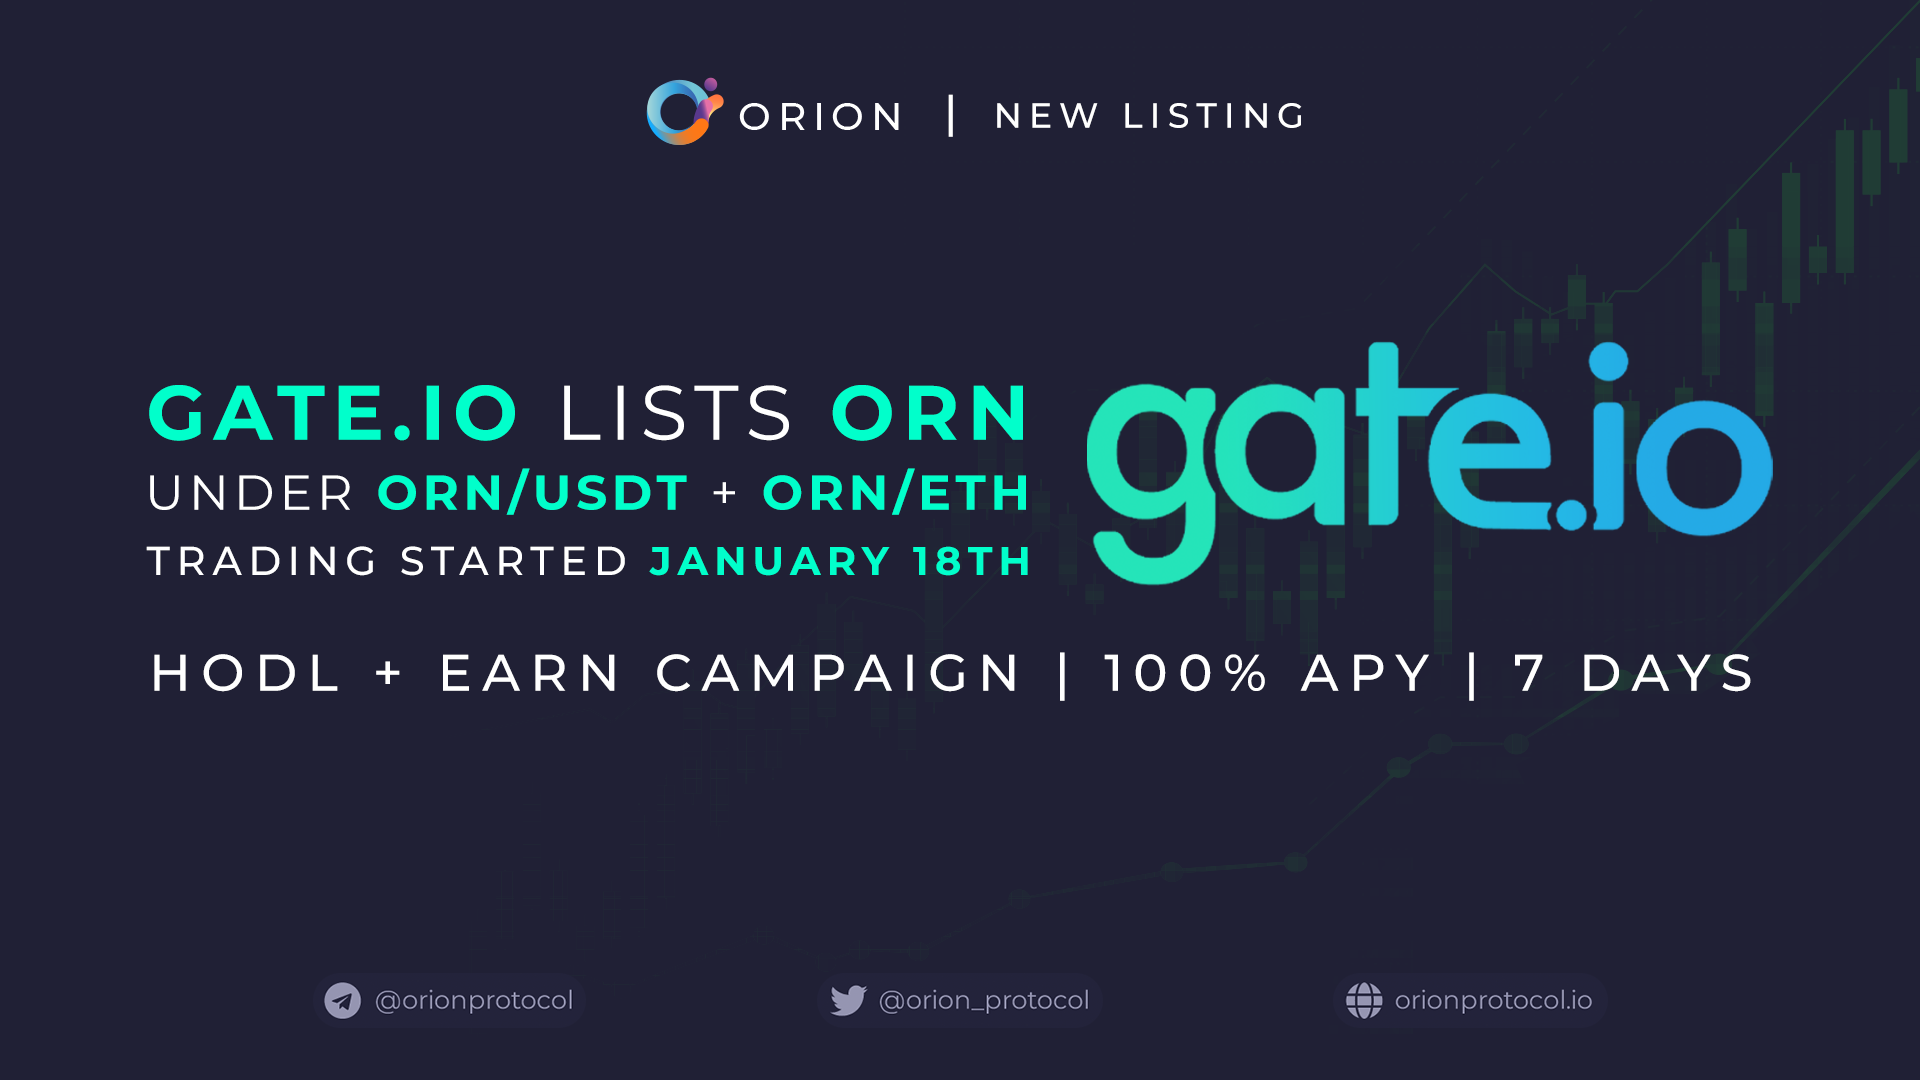 ORN Listed on Gate.io